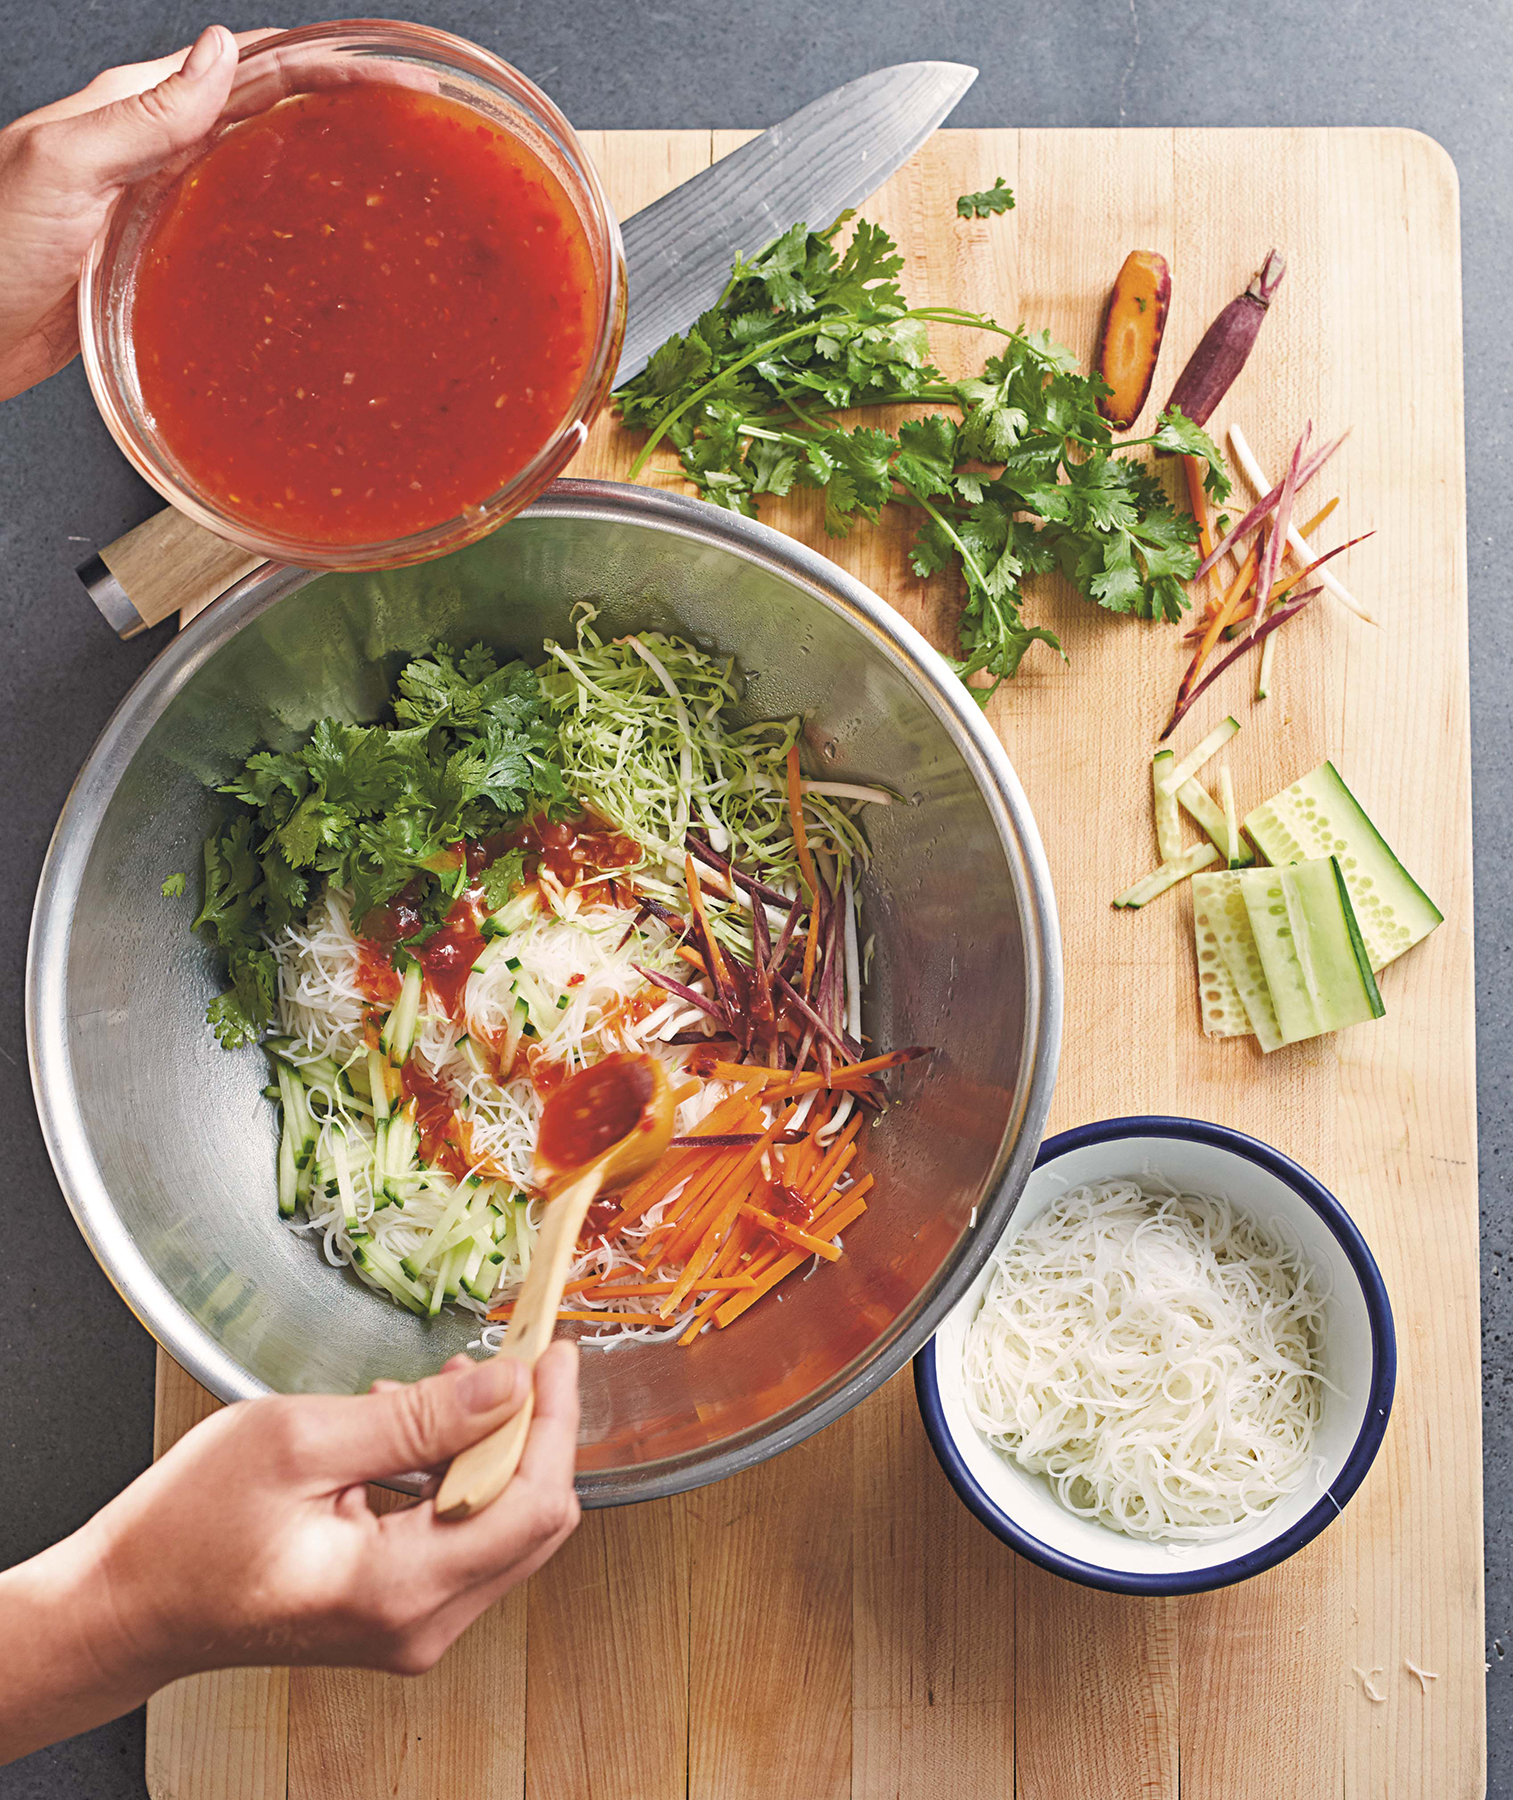 vermicelli-salad-sweet-chili-sauce